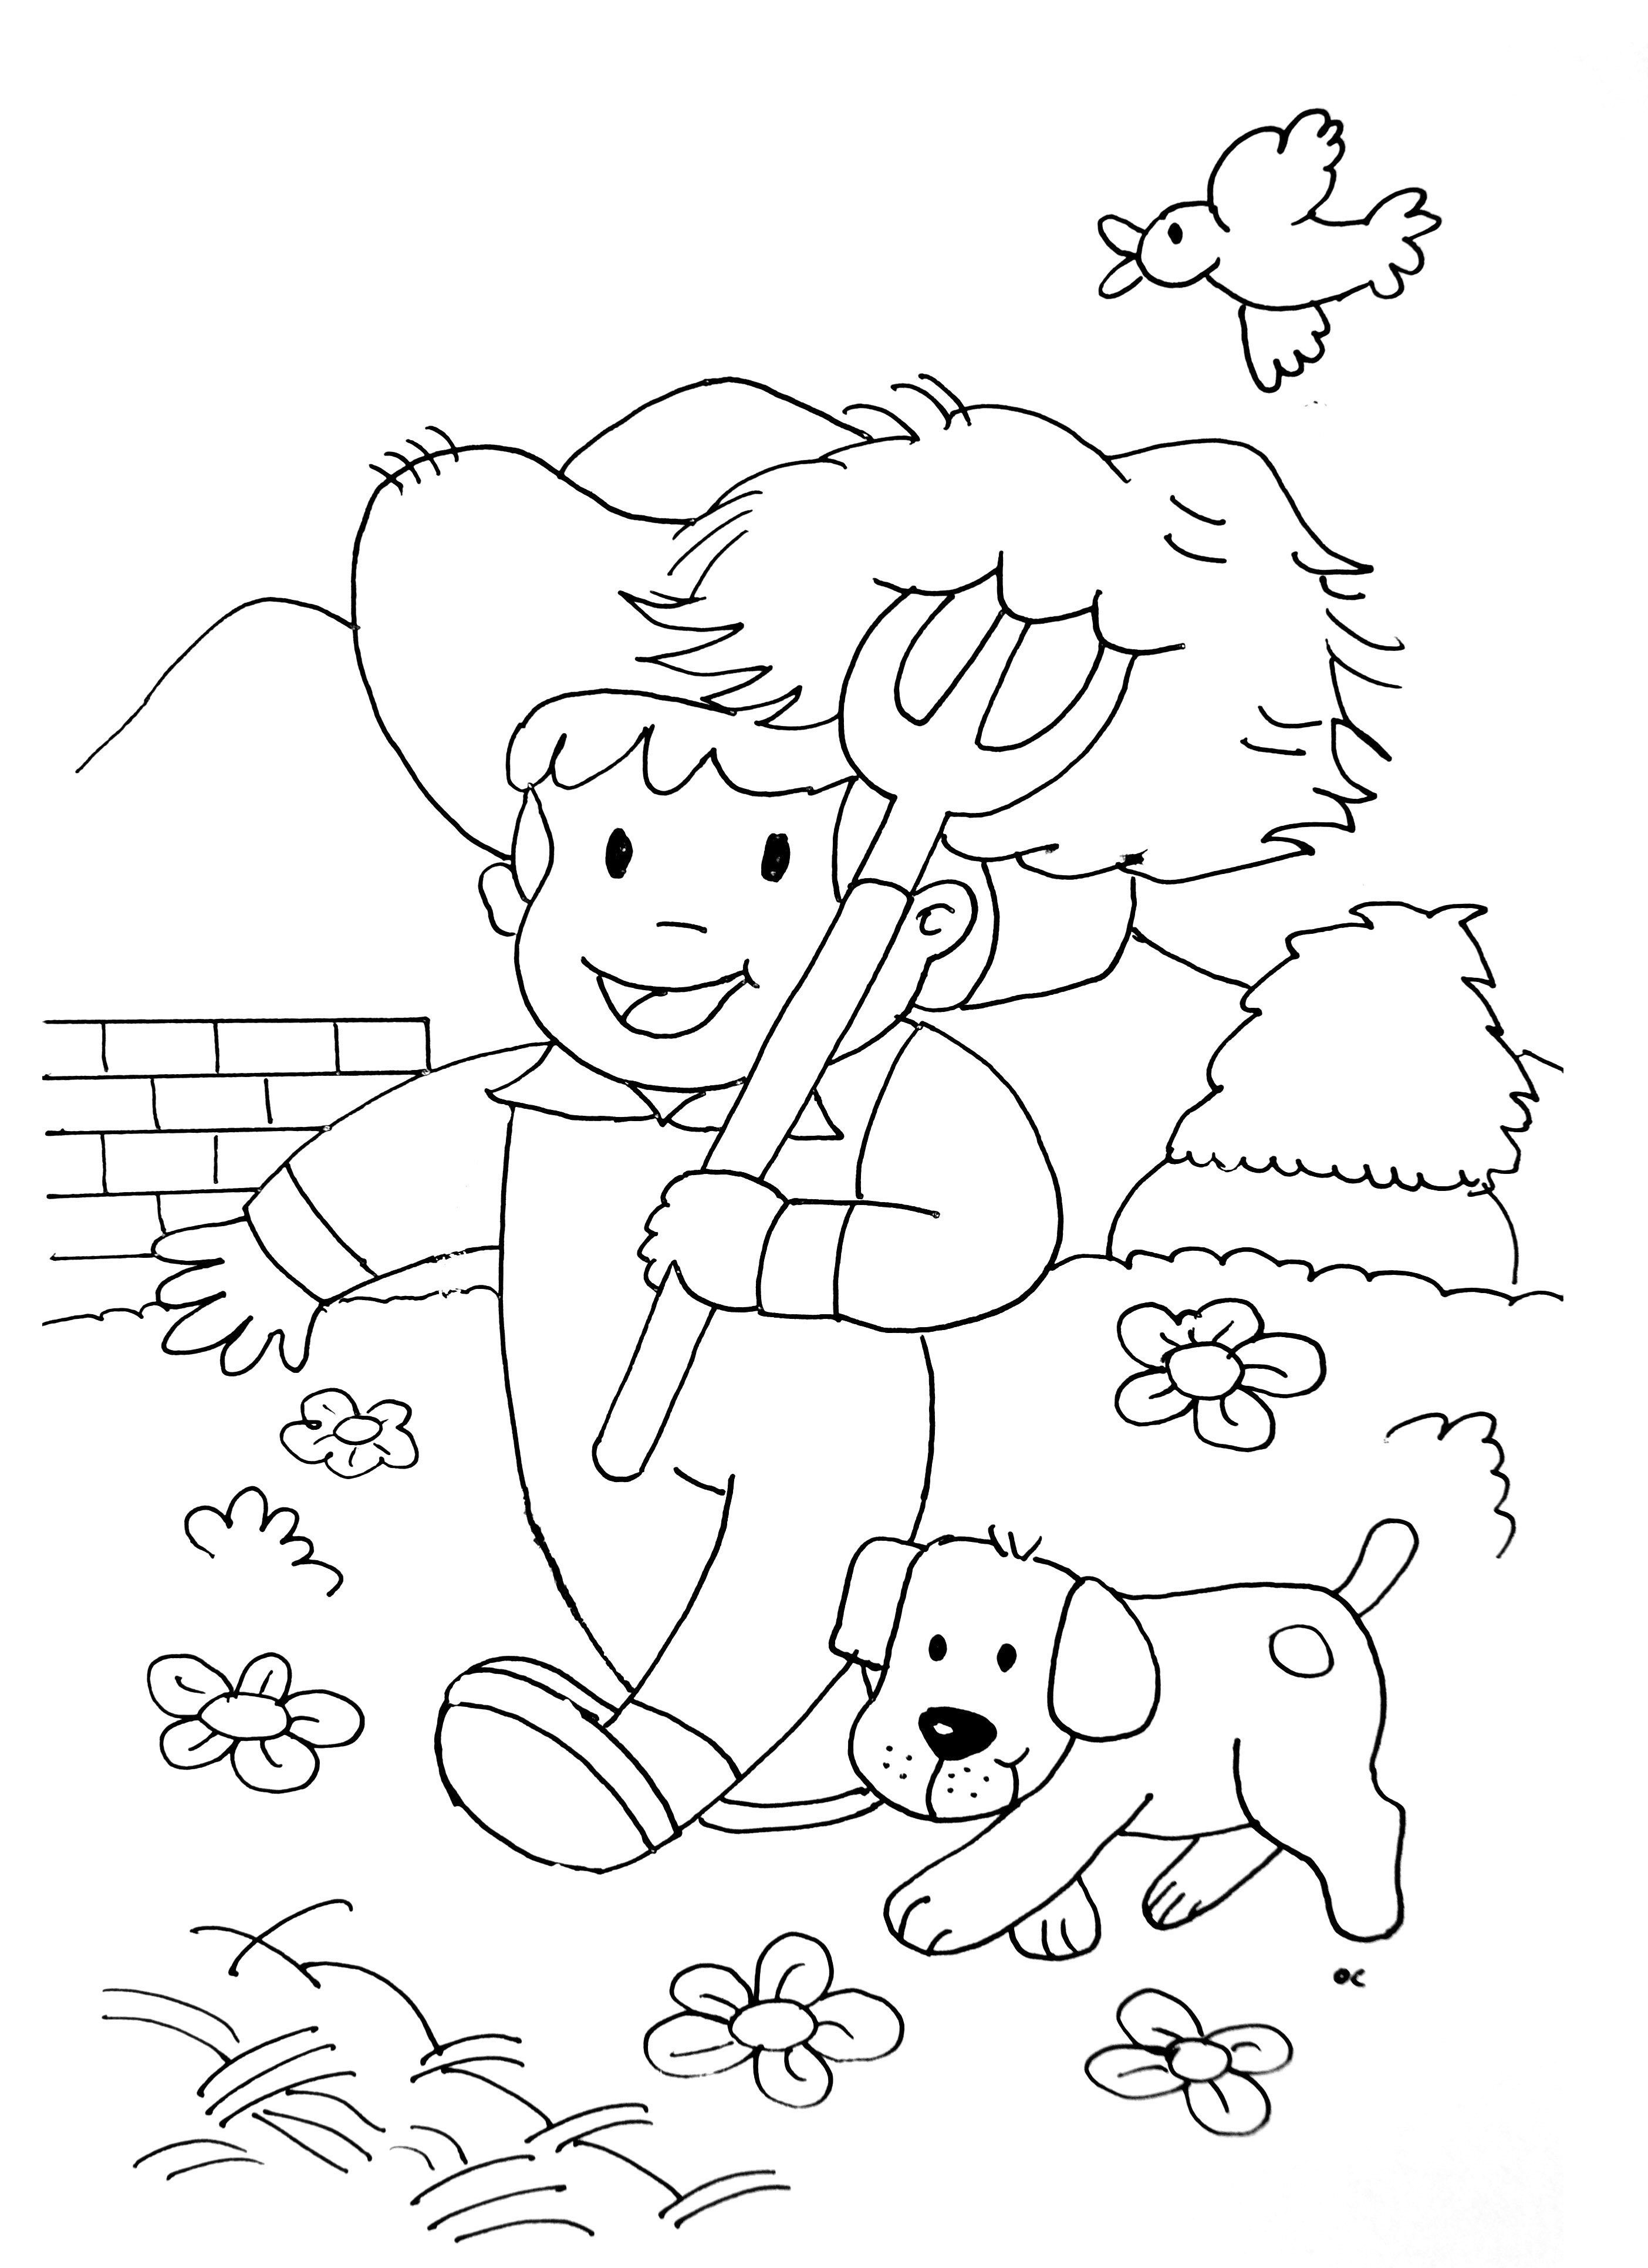 coloring pages kid farm animal - photo#18